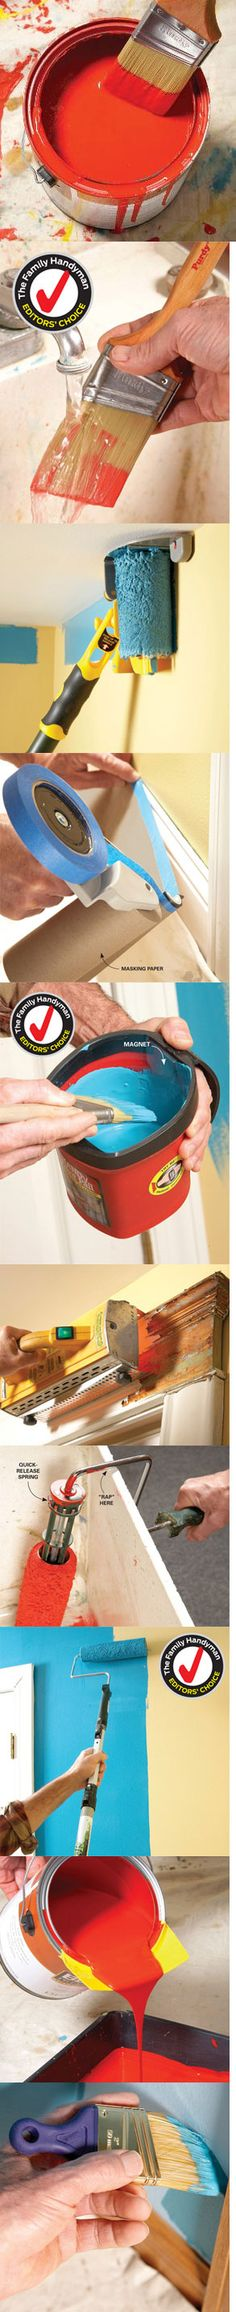 Experts list the best tools for painting—including brushes, rollers, paint removers, masking tools, cleaning tools, pouring spouts, poles, ladders and more. Find must have tools to make your next painting job easier, faster and better at http://www.familyhandyman.com/DIY-Projects/Painting/Painting-Tools/best-diy-painting-tools/View-All